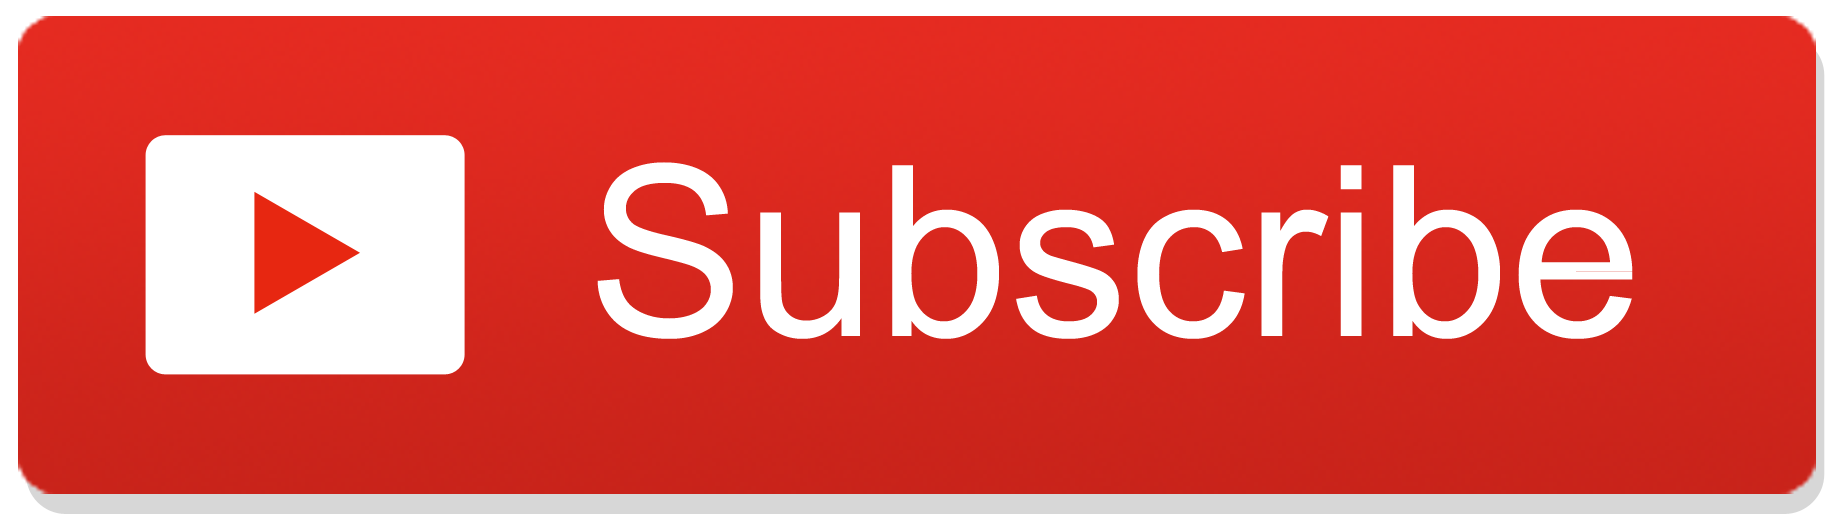 YouTube Subscribe Button (2014)